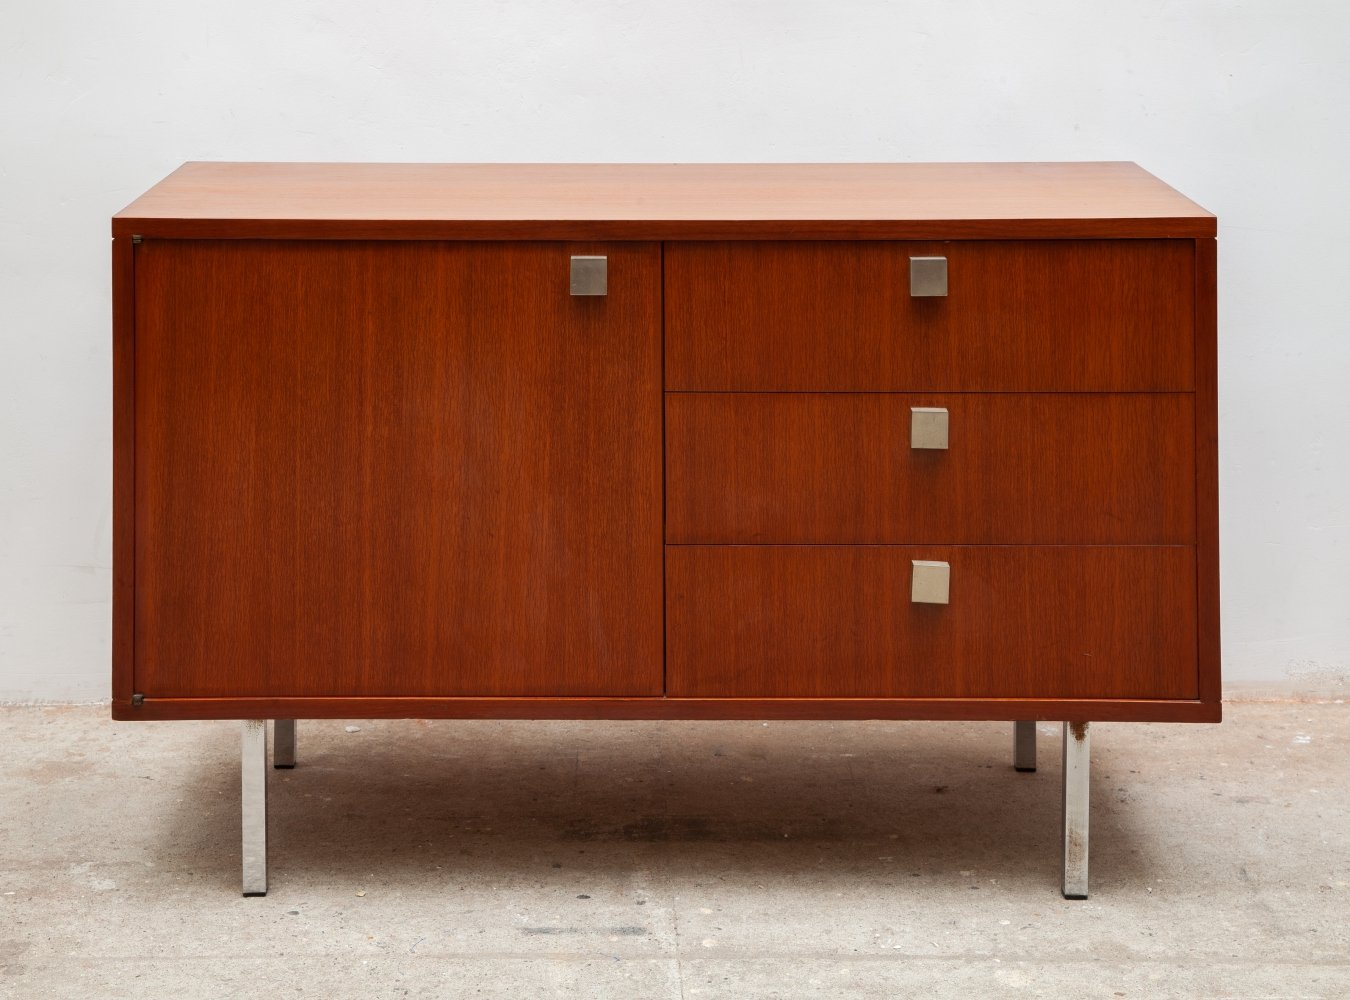 Small vintage walnut sideboard by Alfred Hendrickx, Belgium 1960s